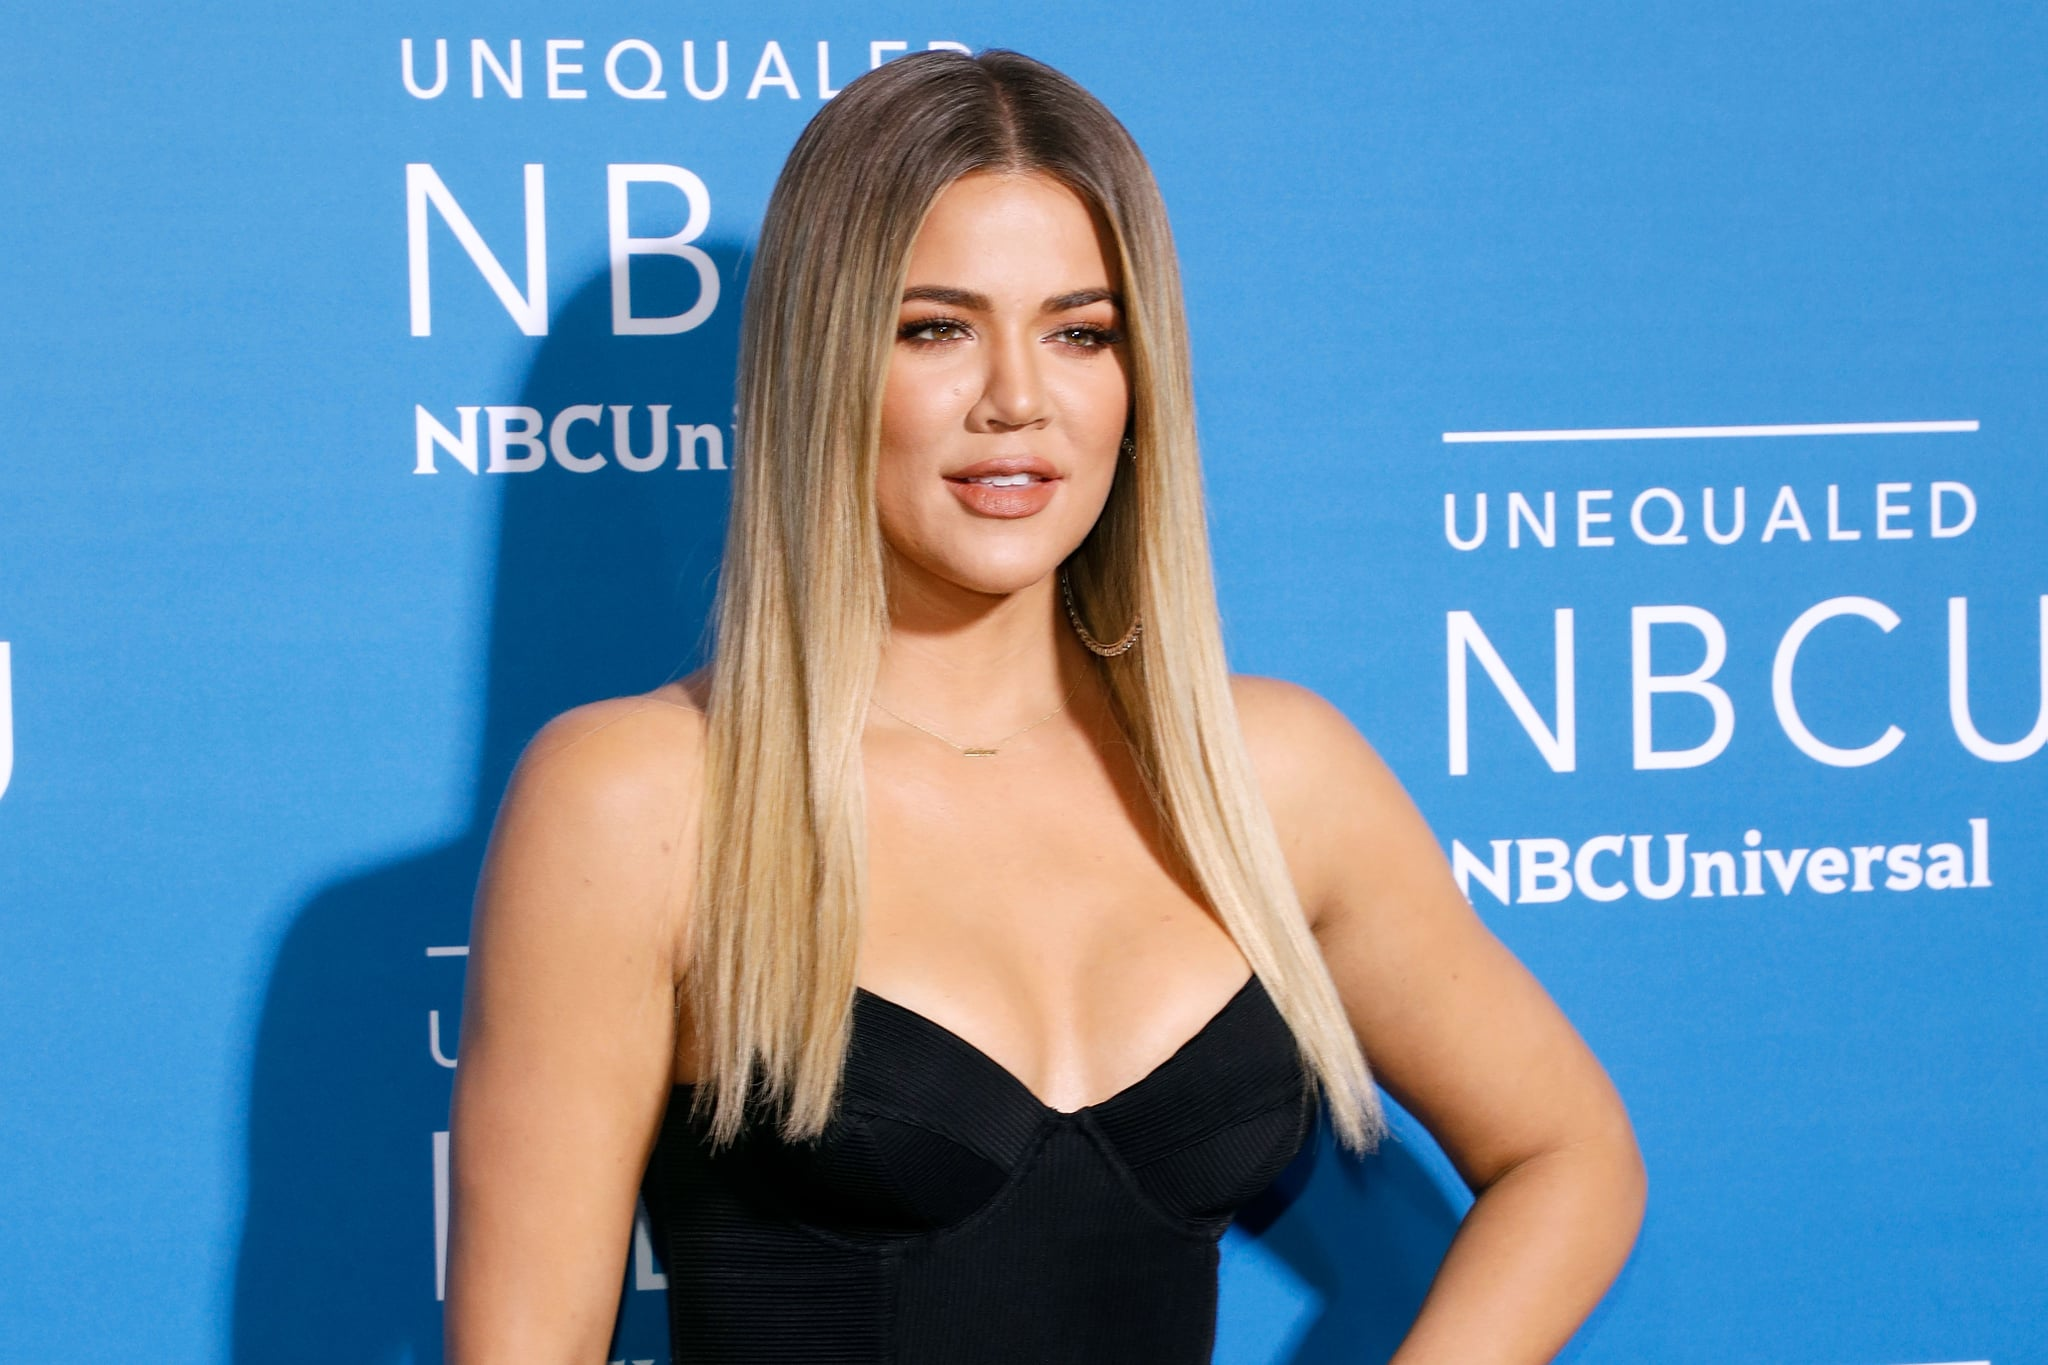 NEW YORK, NY - MAY 15:  Khloe Kardashian attends the 2017 NBCUniversal Upfront at Radio City Music Hall on May 15, 2017 in New York City.  (Photo by Taylor Hill/FilmMagic)